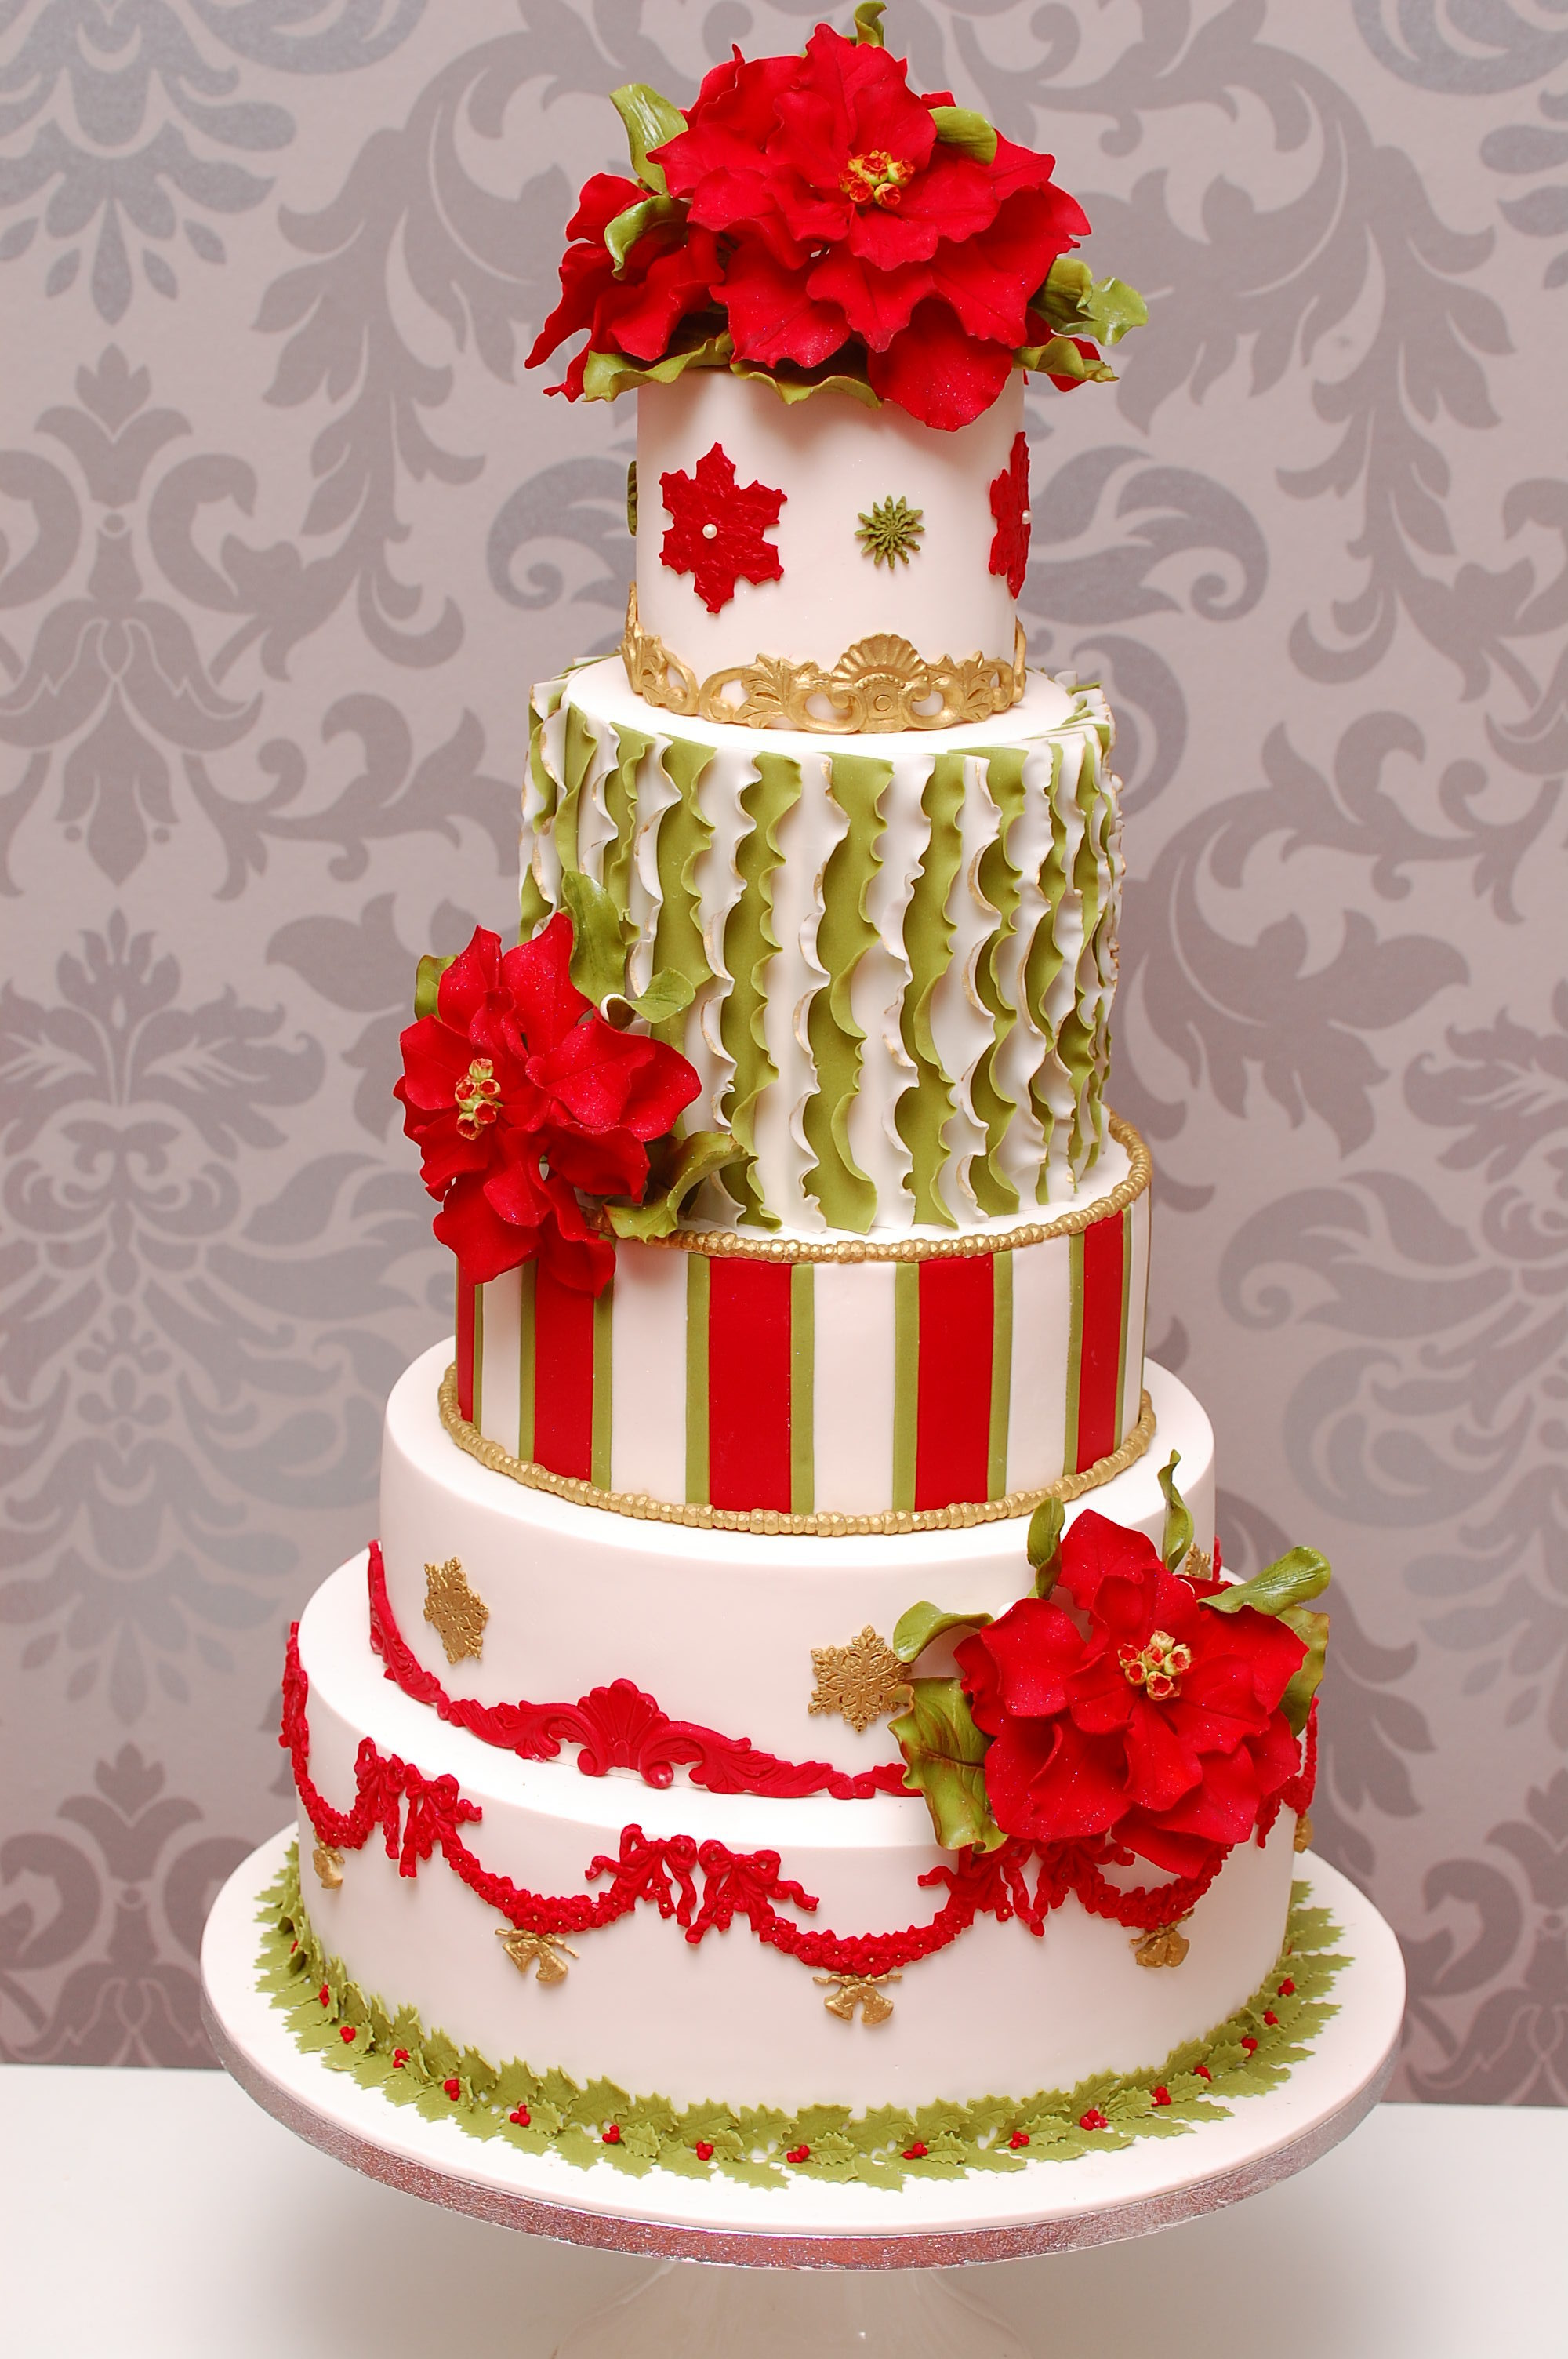 Gold and white fondant wedding cake with red sugar flowers